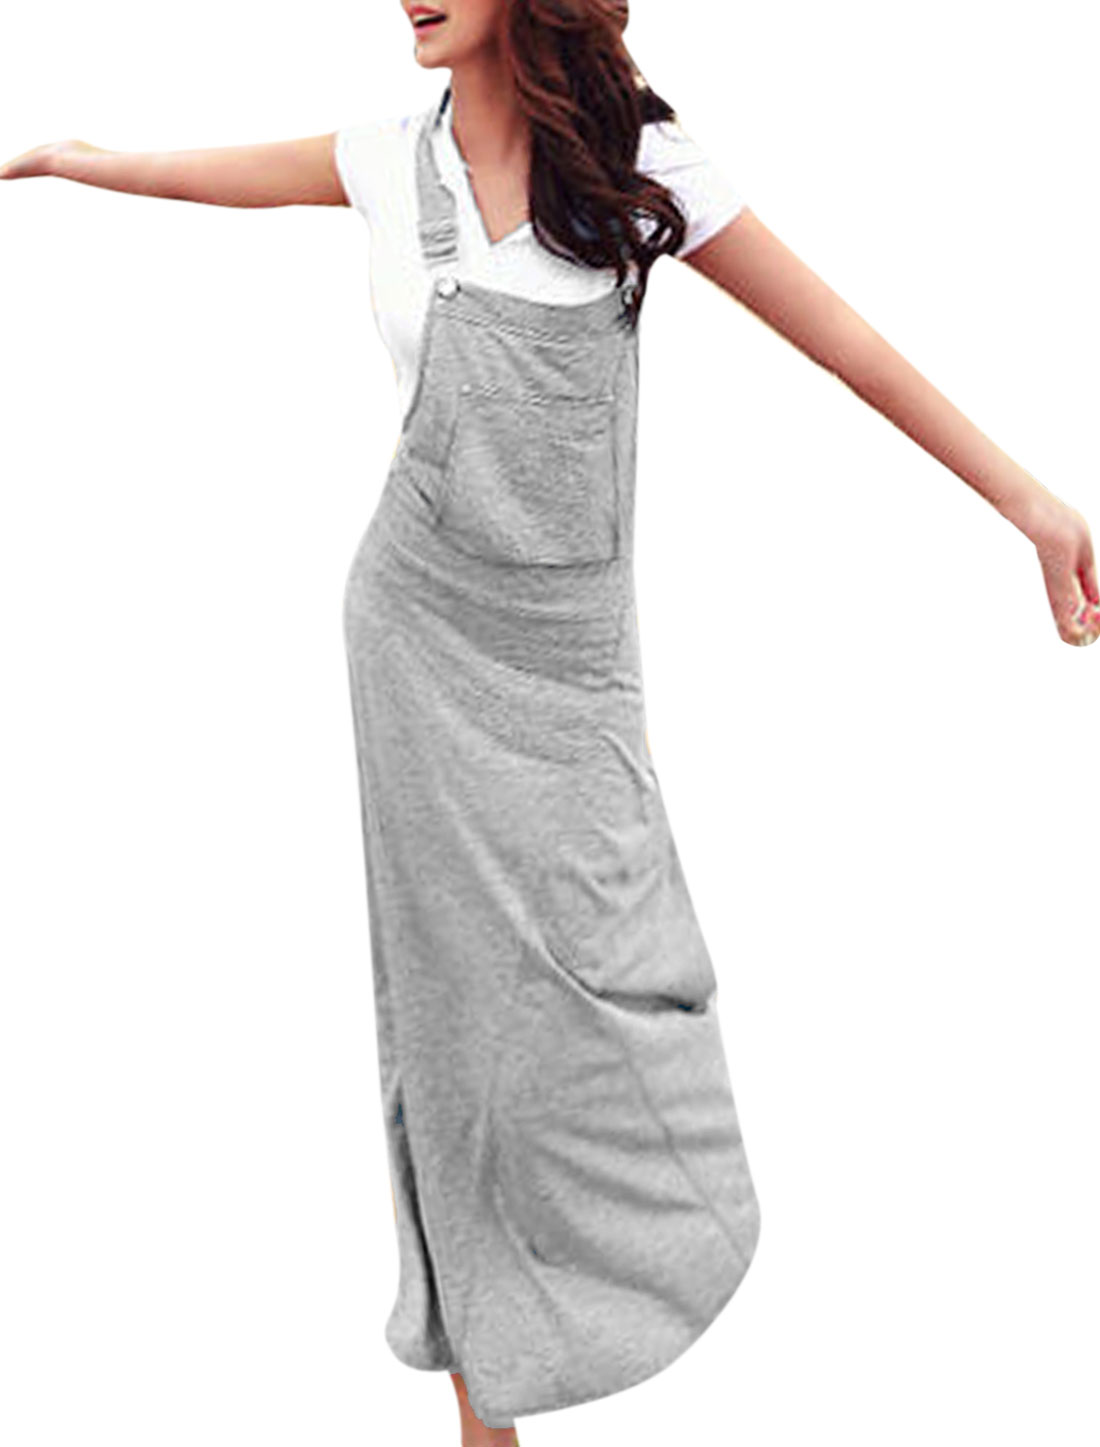 Women Full-Length Slim Fit Hooded Overall Dress Gray XS